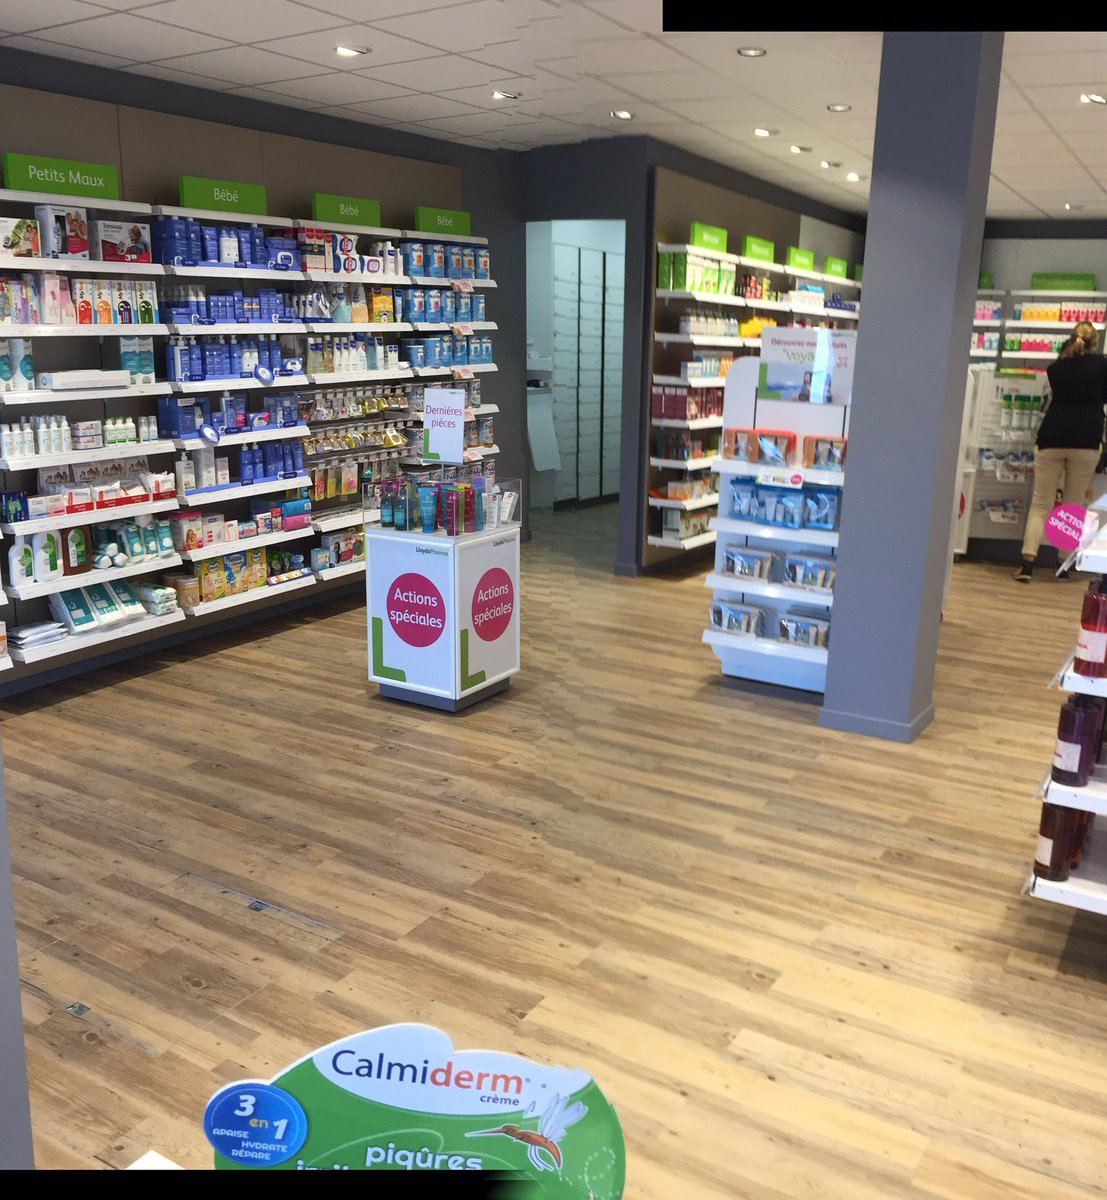 test Twitter Media - JCC delighted to be working with @lloydspharma on their new pharmacy at Roisier-Bois https://t.co/olWCxQ4QGs